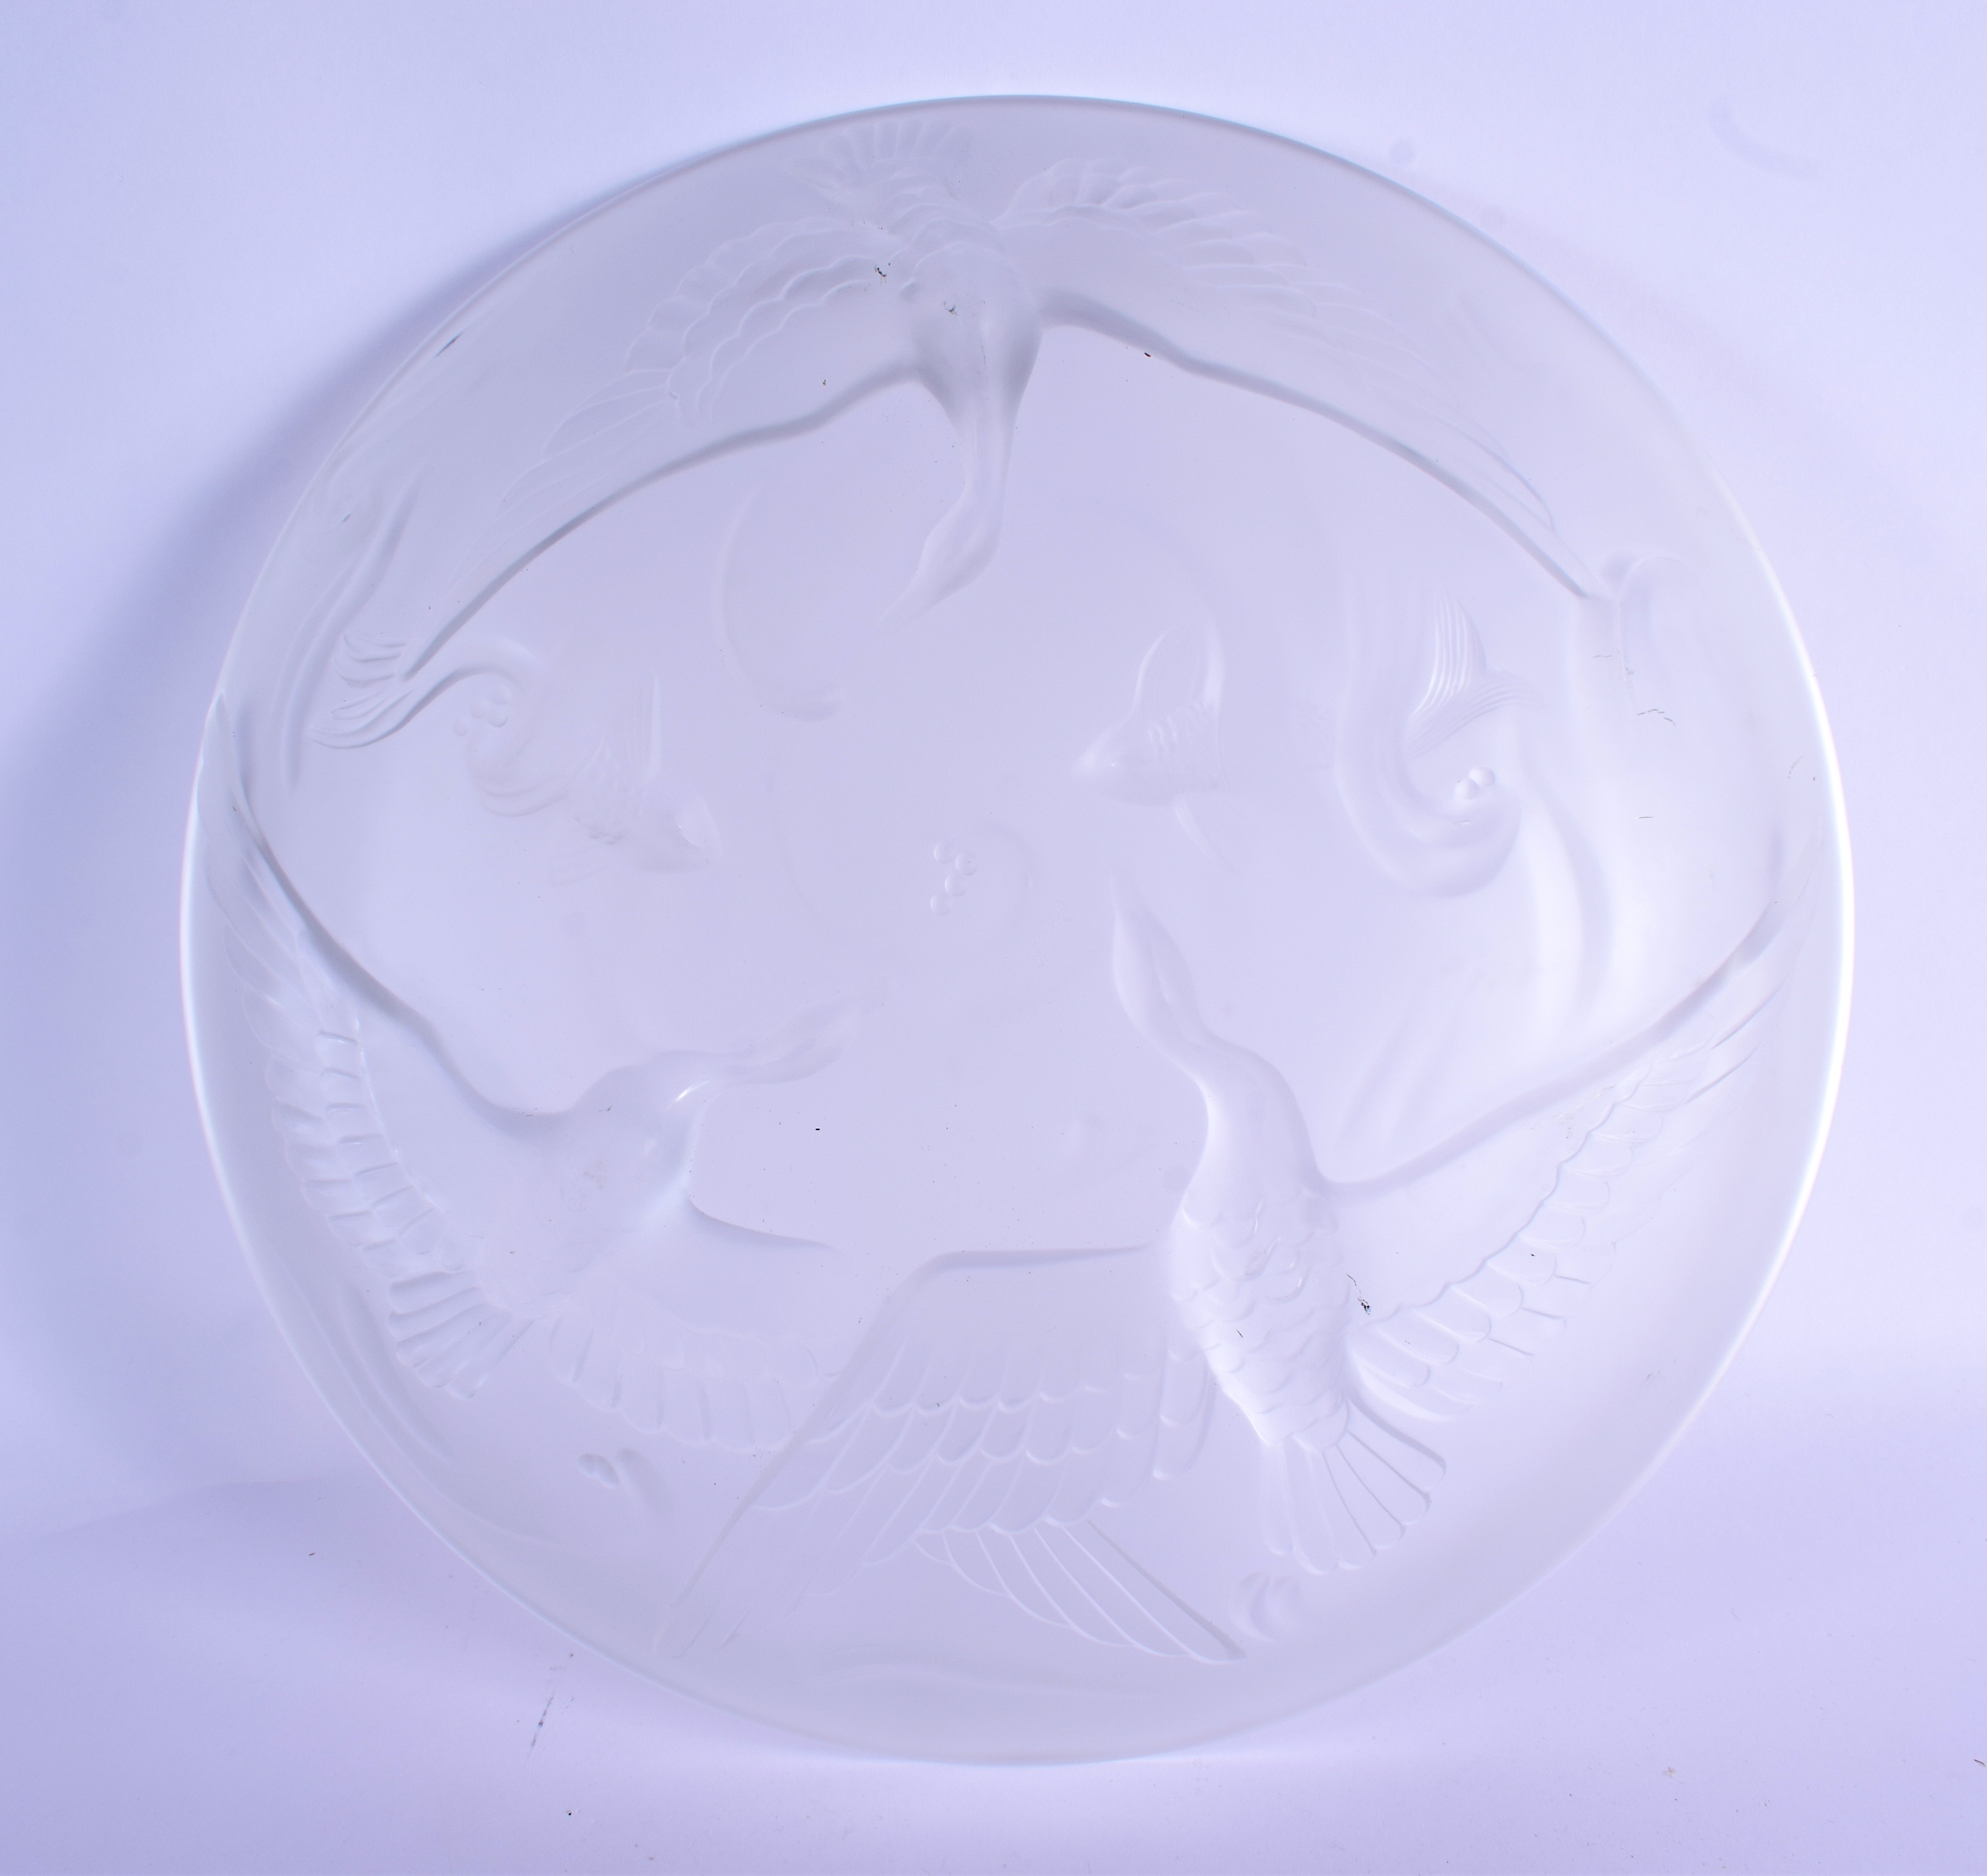 A LARGE FRENCH VERLYS MOLD LES CANARDS SAUVAGE GLASS DISH. 26 cm diameter. - Image 2 of 5